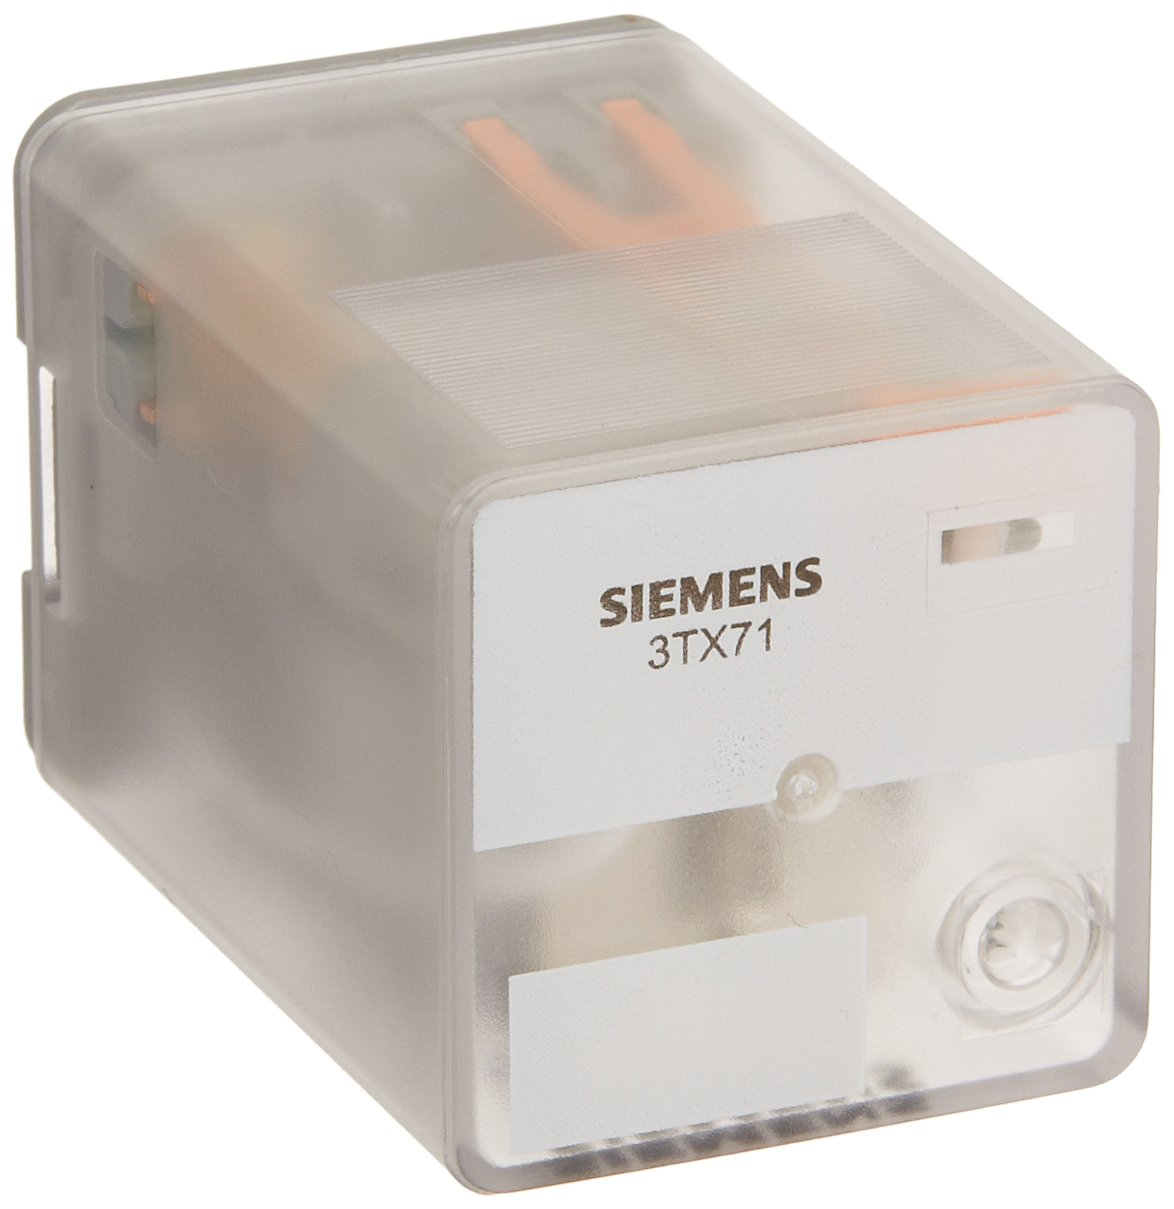 Siemens 3TX7112-1DF13C Basic Plug In Relay, Standard Octal Base, Mechanical Flag, DPDT Contacts, 16A Contact Rating, 120VAC Coil Voltage